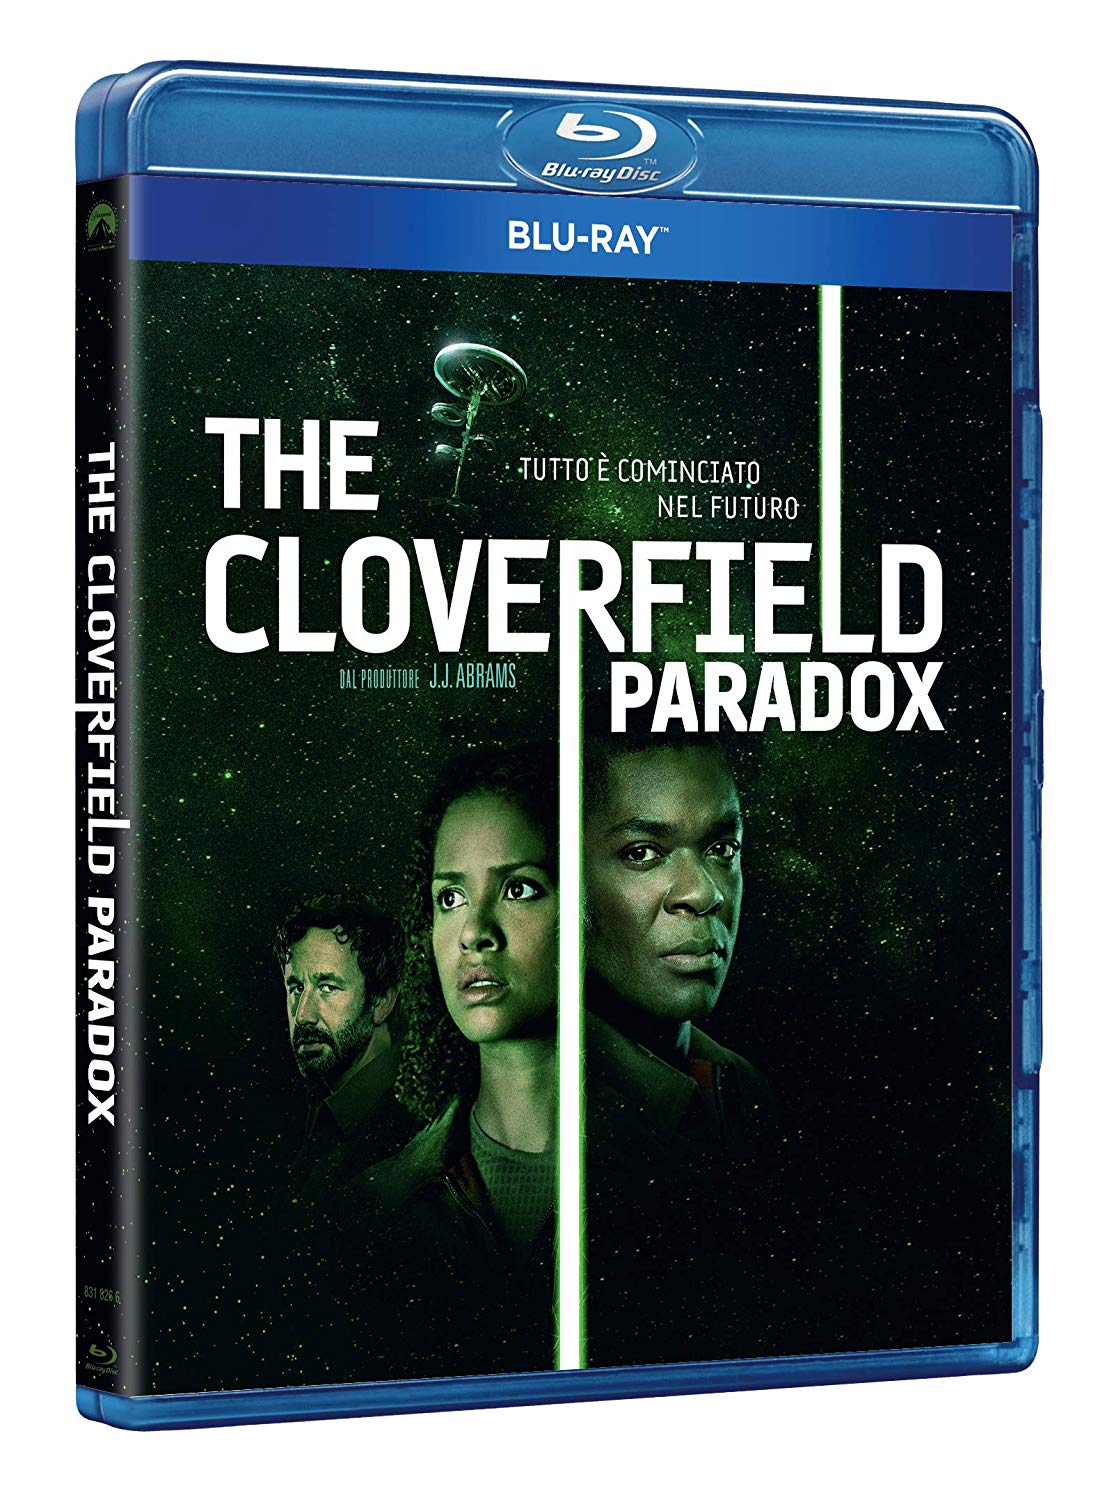 THE CLOVERFIELD PARADOX - BLU RAY